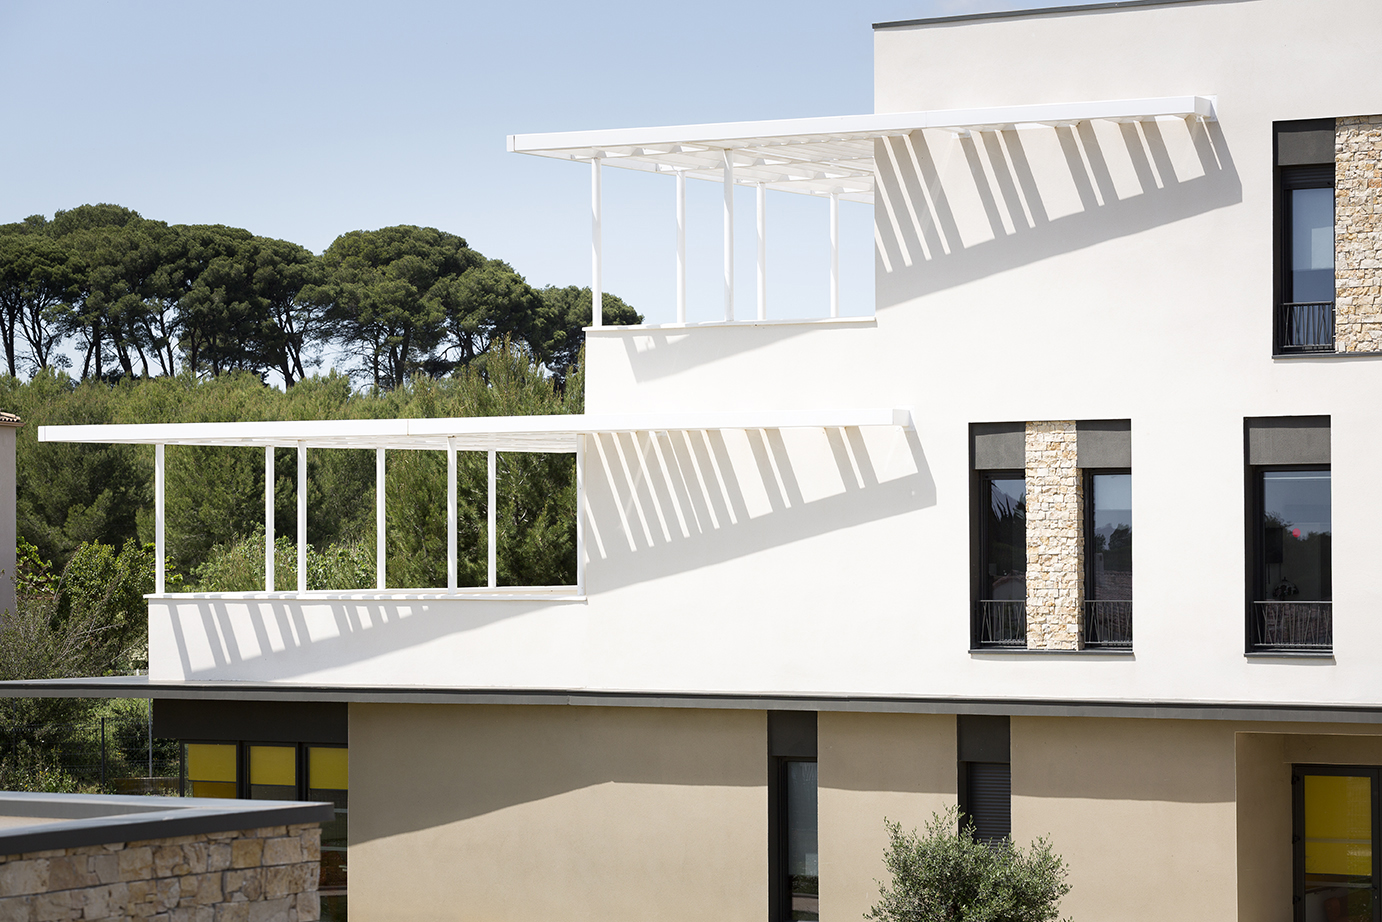 mc-lucat-ehpad-floreales-pinet-a+-architecture